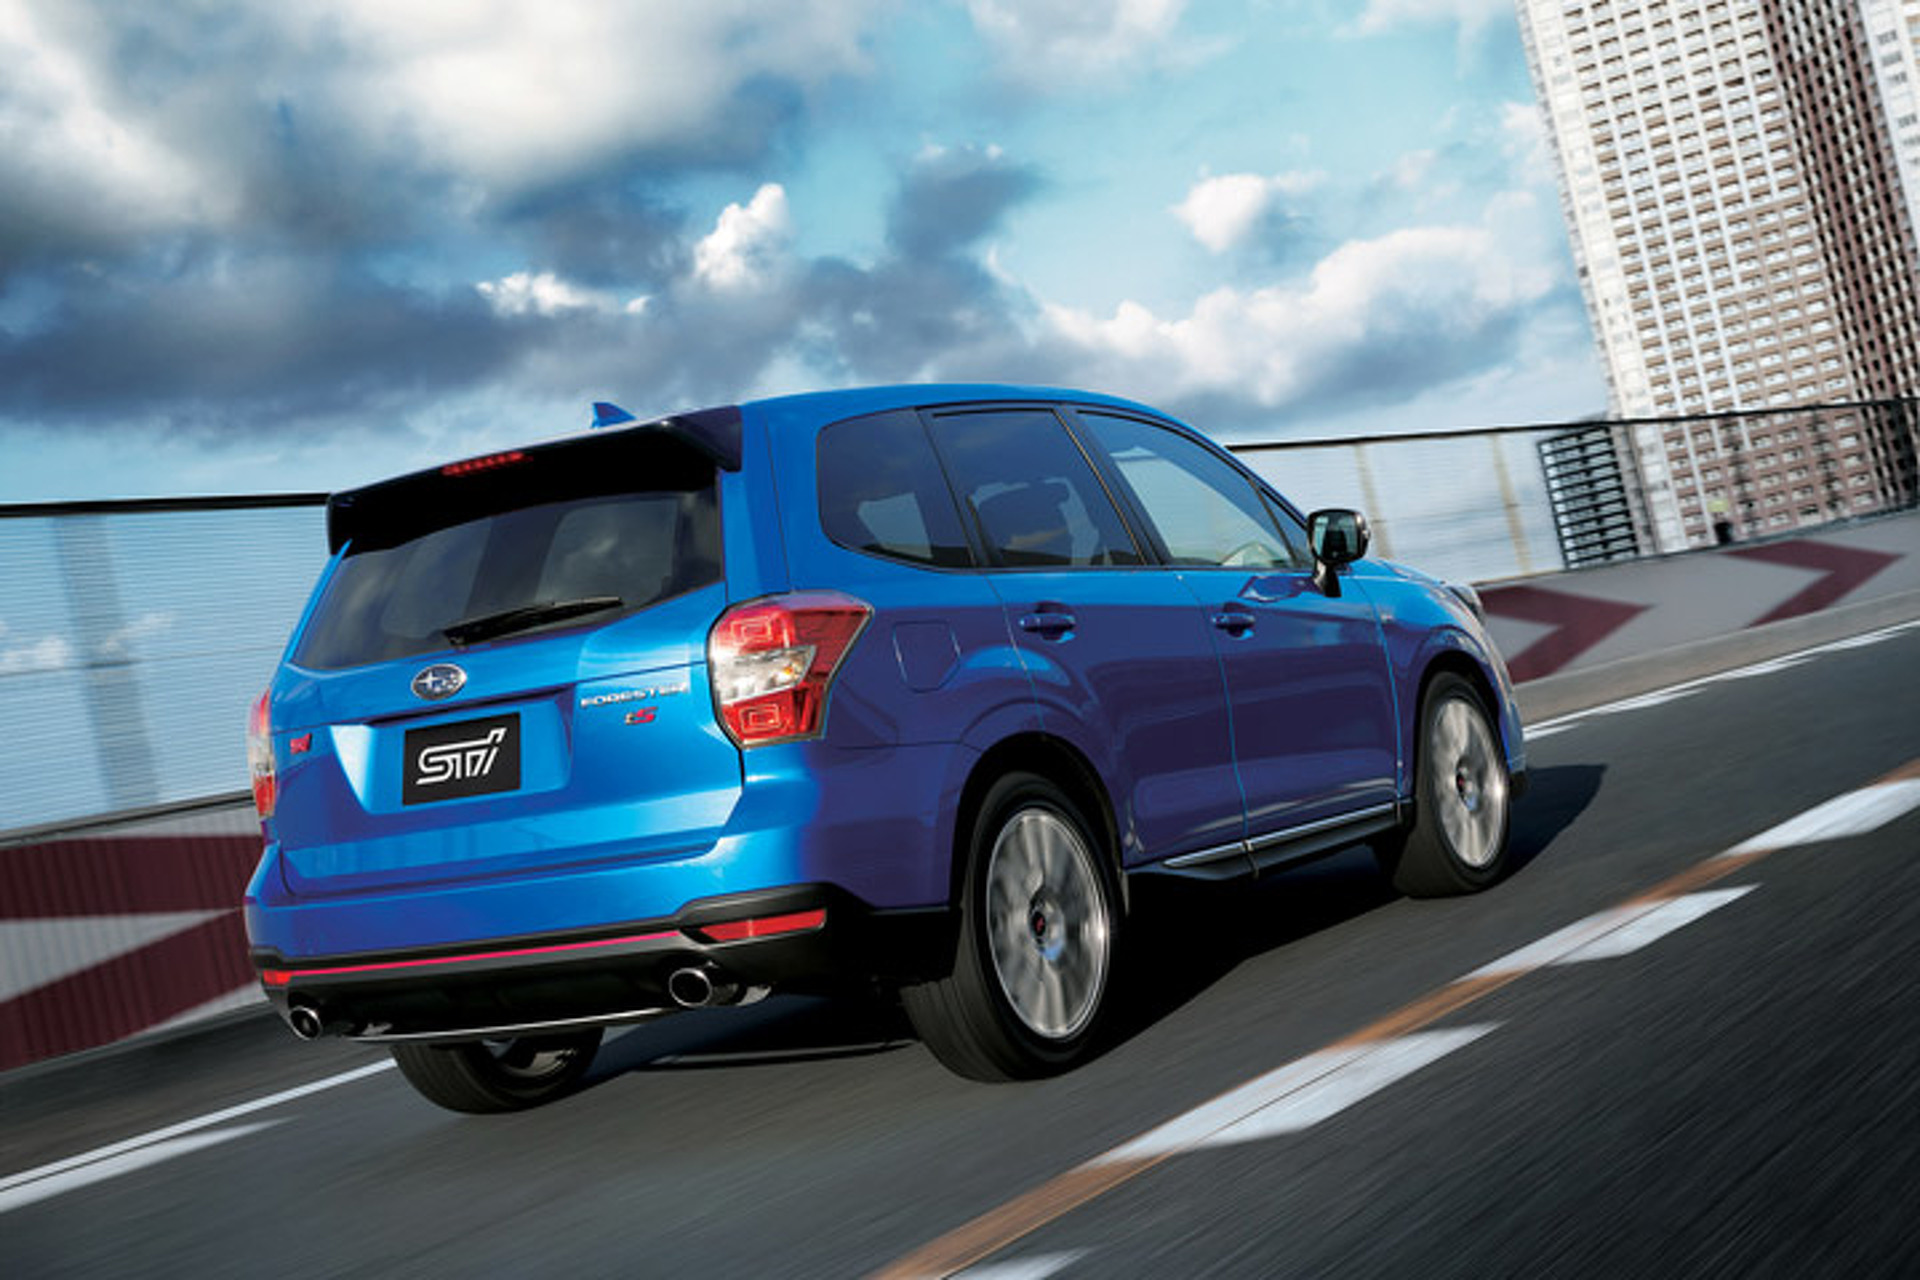 The Subaru Forester Got a Hot STI Treatment